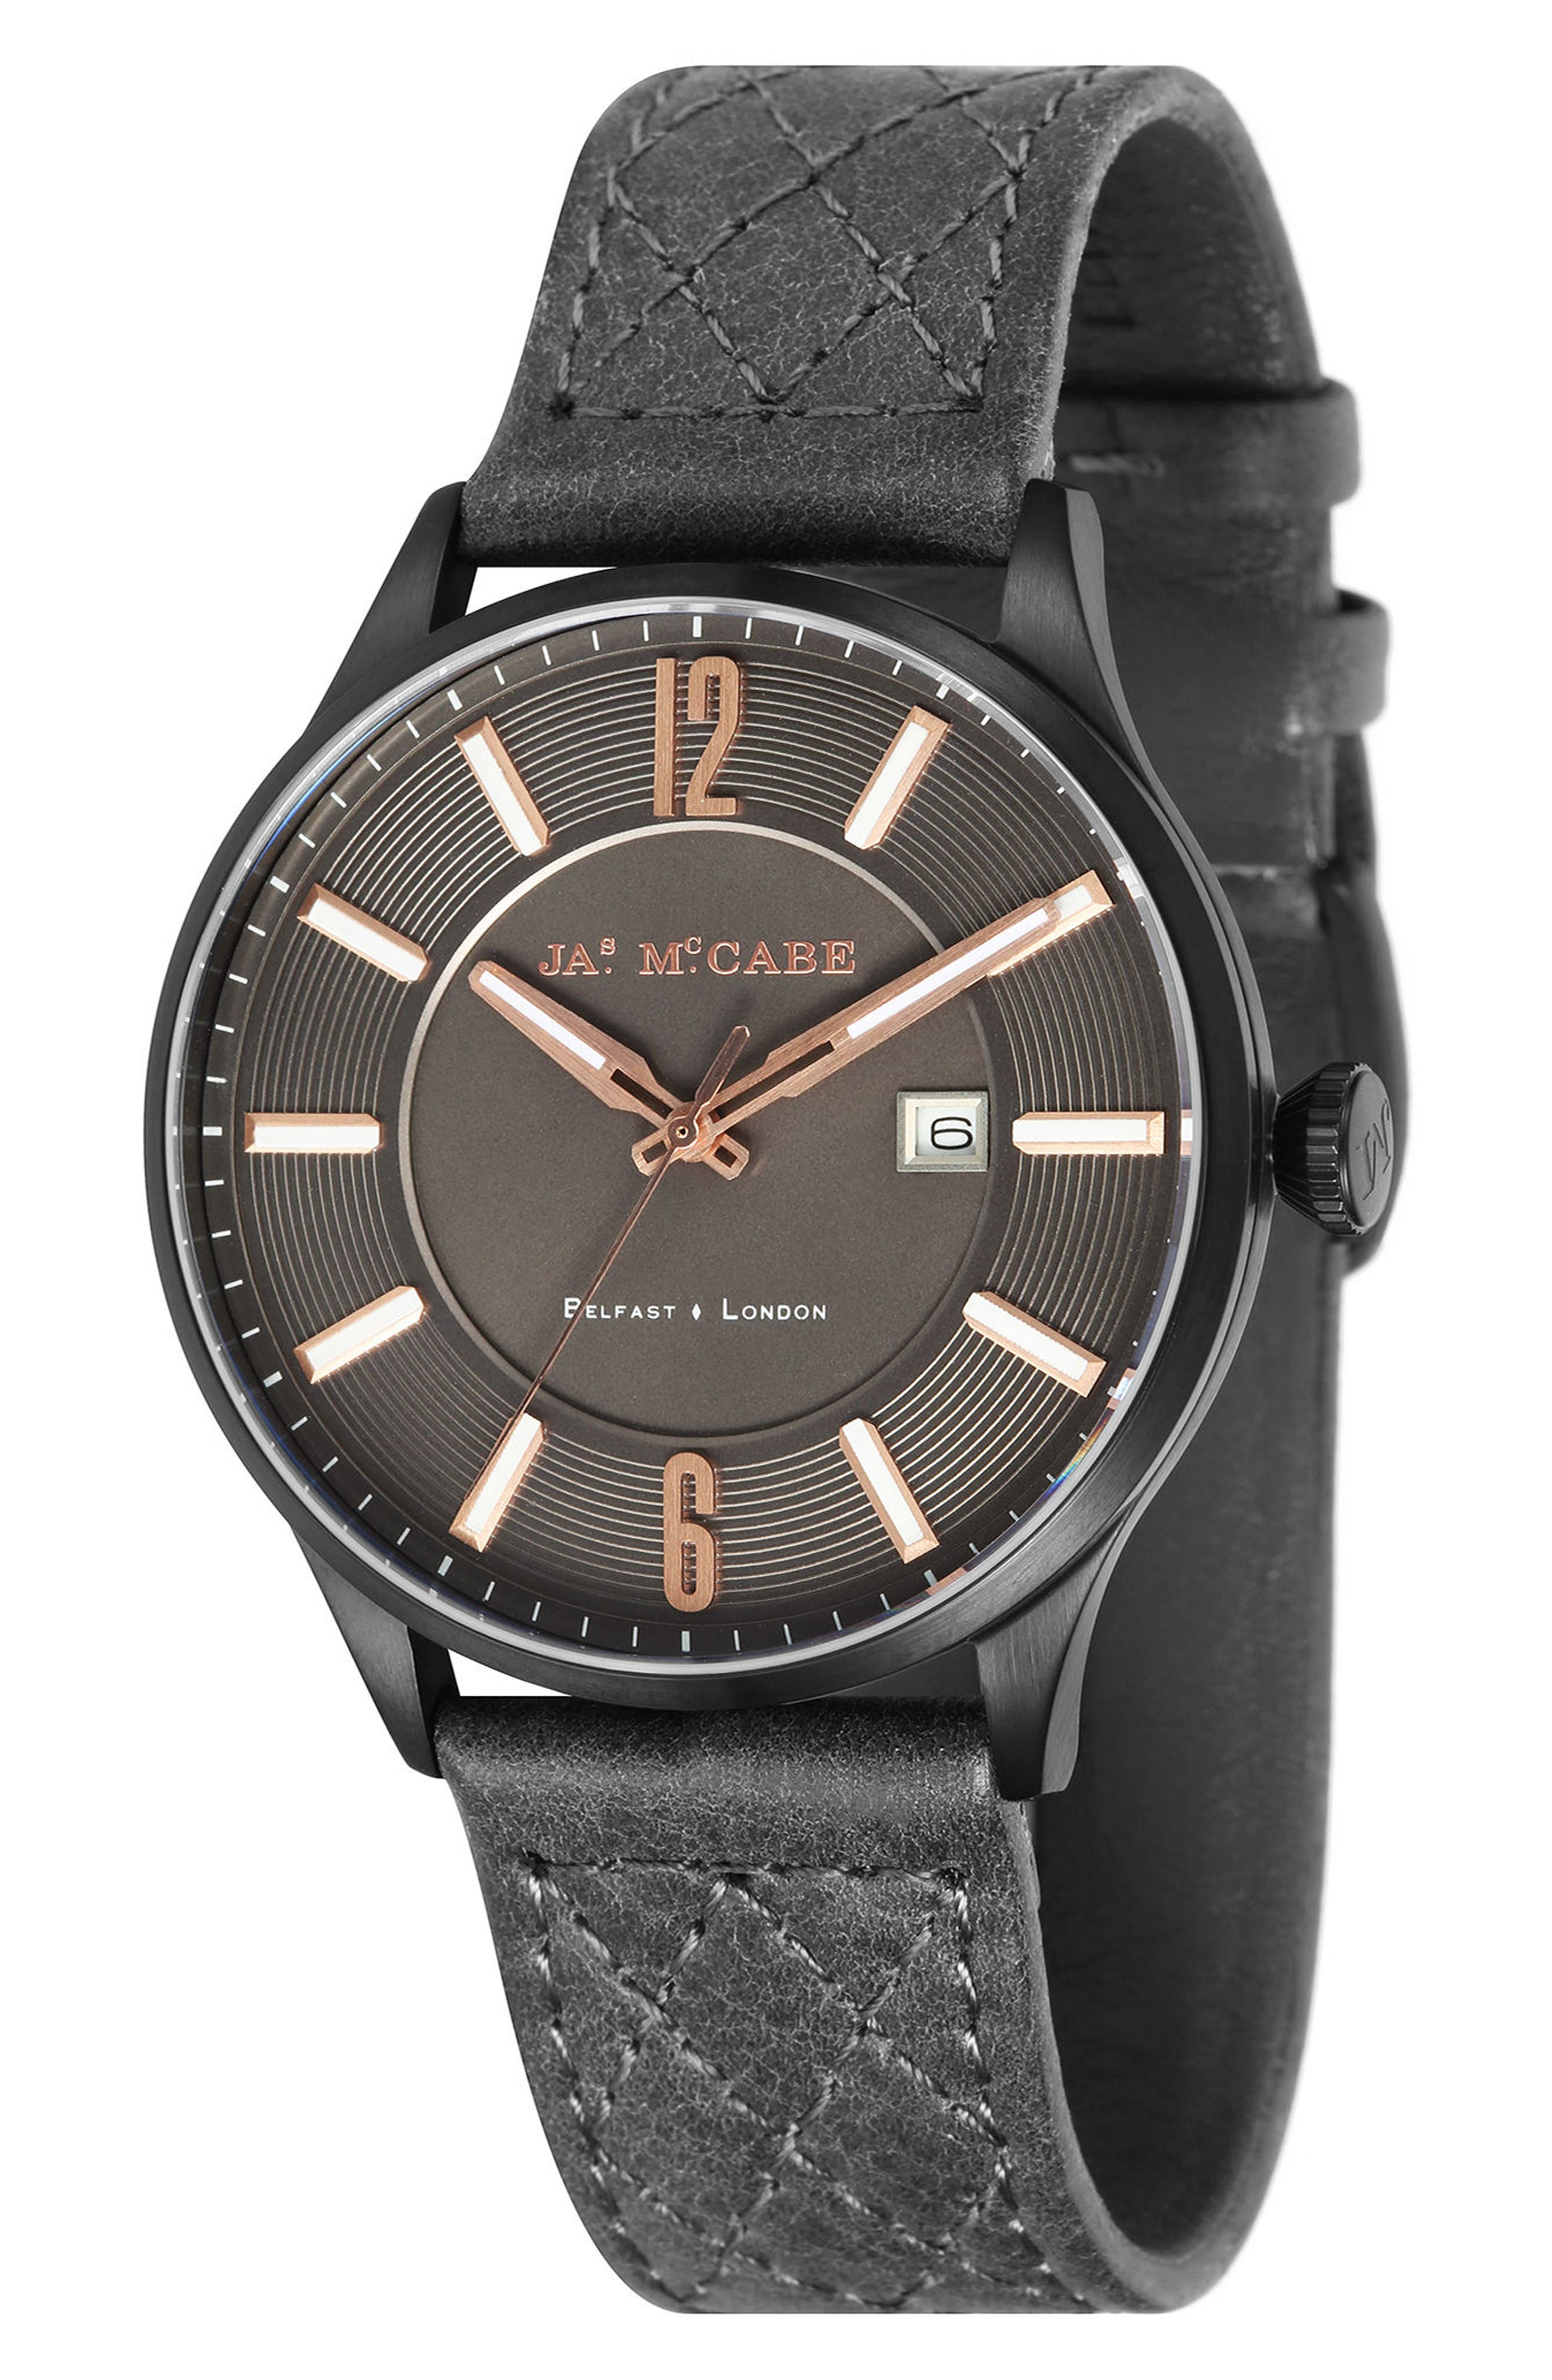 Main Image - James McCabe London Slim Leather Strap Watch, 43mm